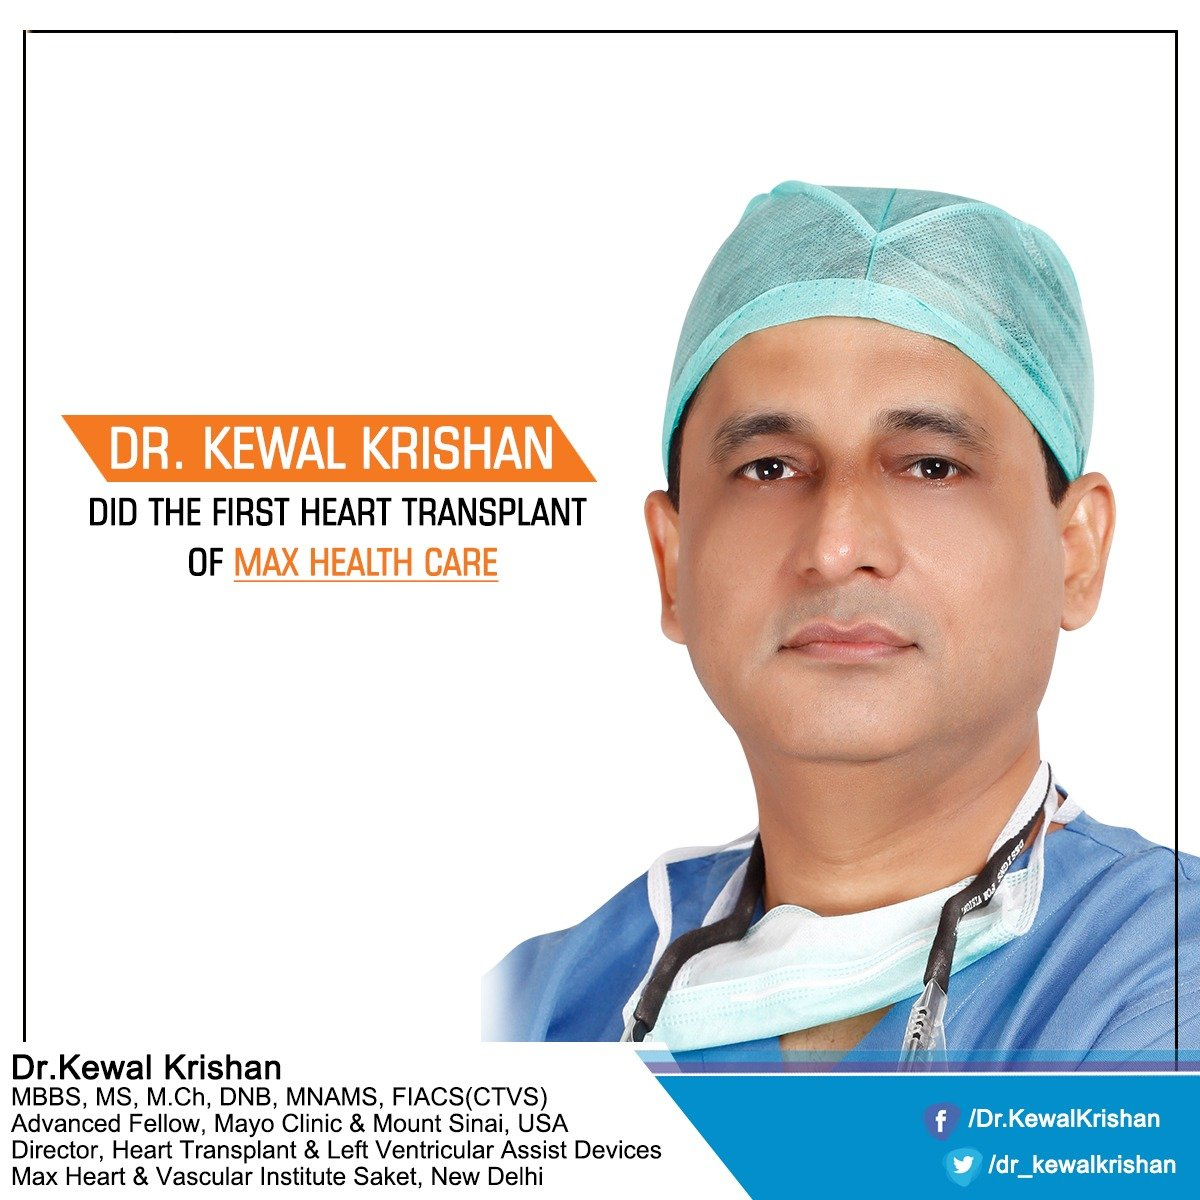 Dr  Kewal Krishan on Twitter: